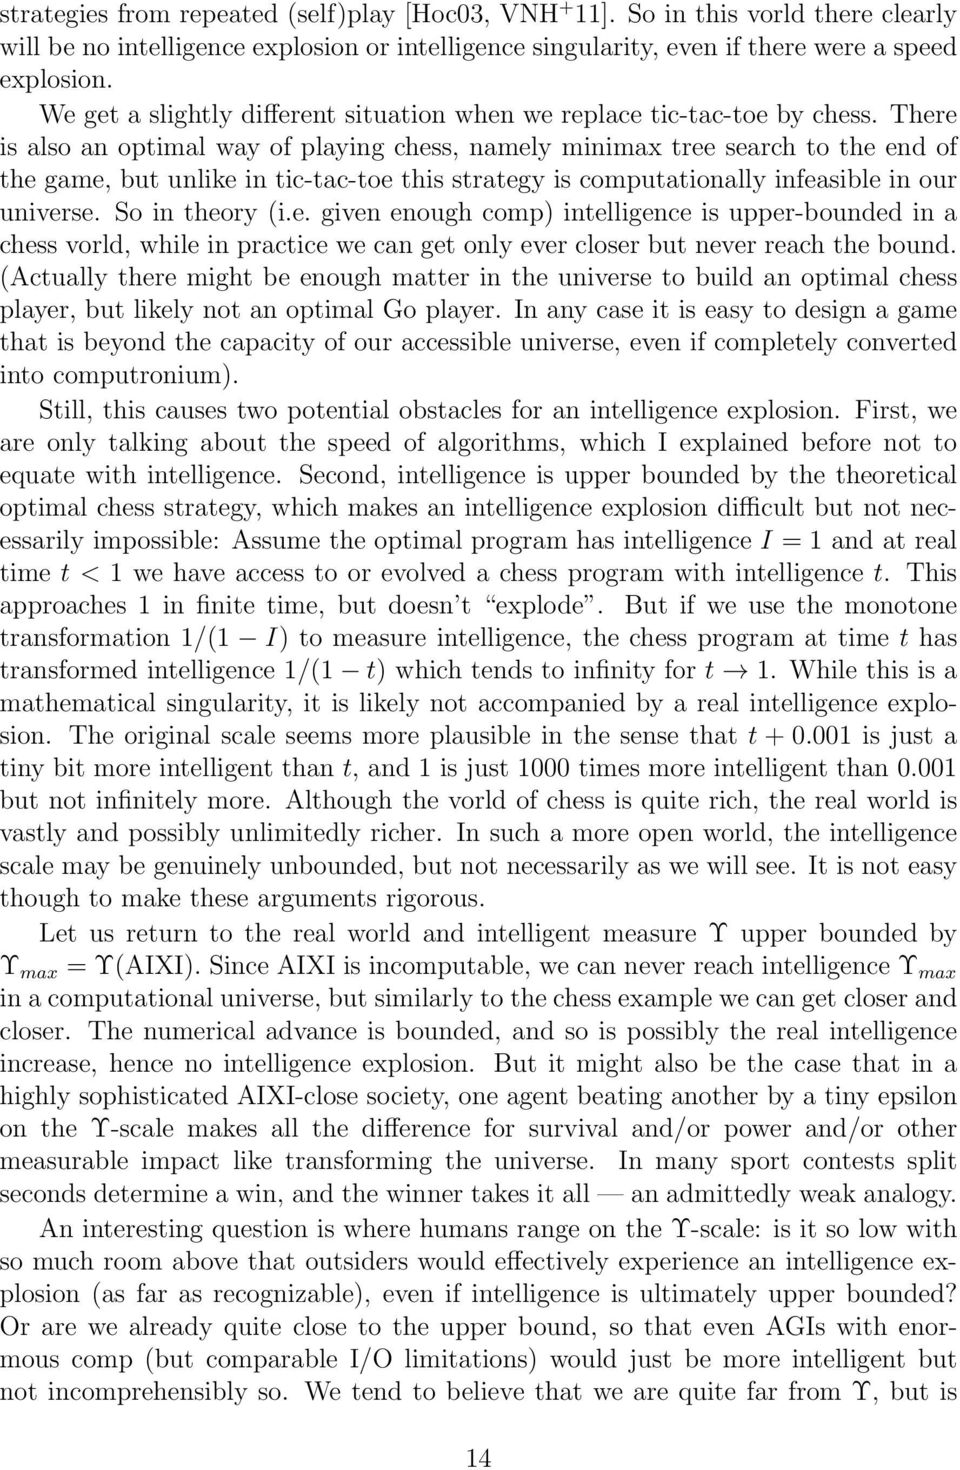 There is also an optimal way of playing chess, namely minimax tree search to the end of the game, but unlike in tic-tac-toe this strategy is computationally infeasible in our universe.